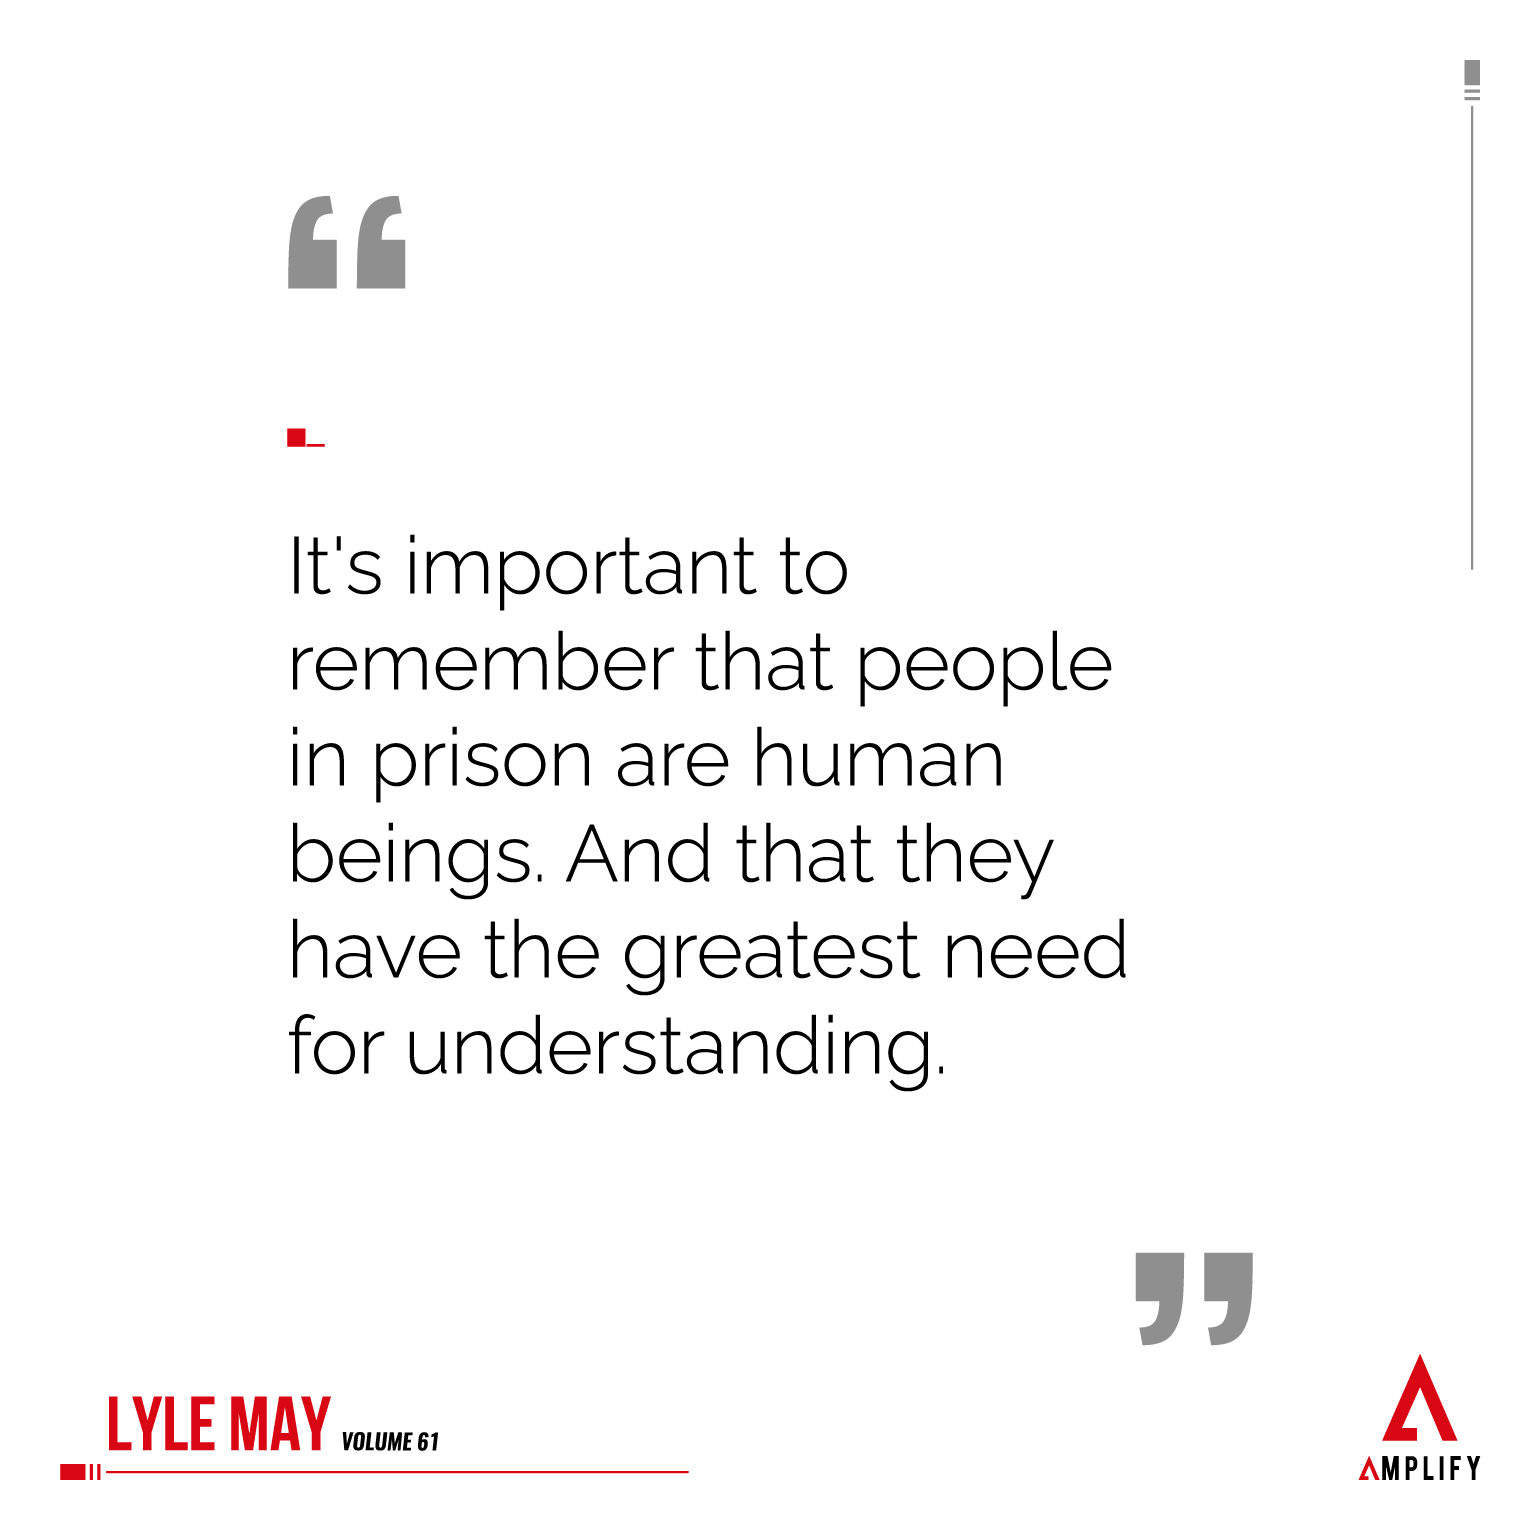 Quote: It's important to remember that people in prison are human beings. And that they have the greatest need for understanding